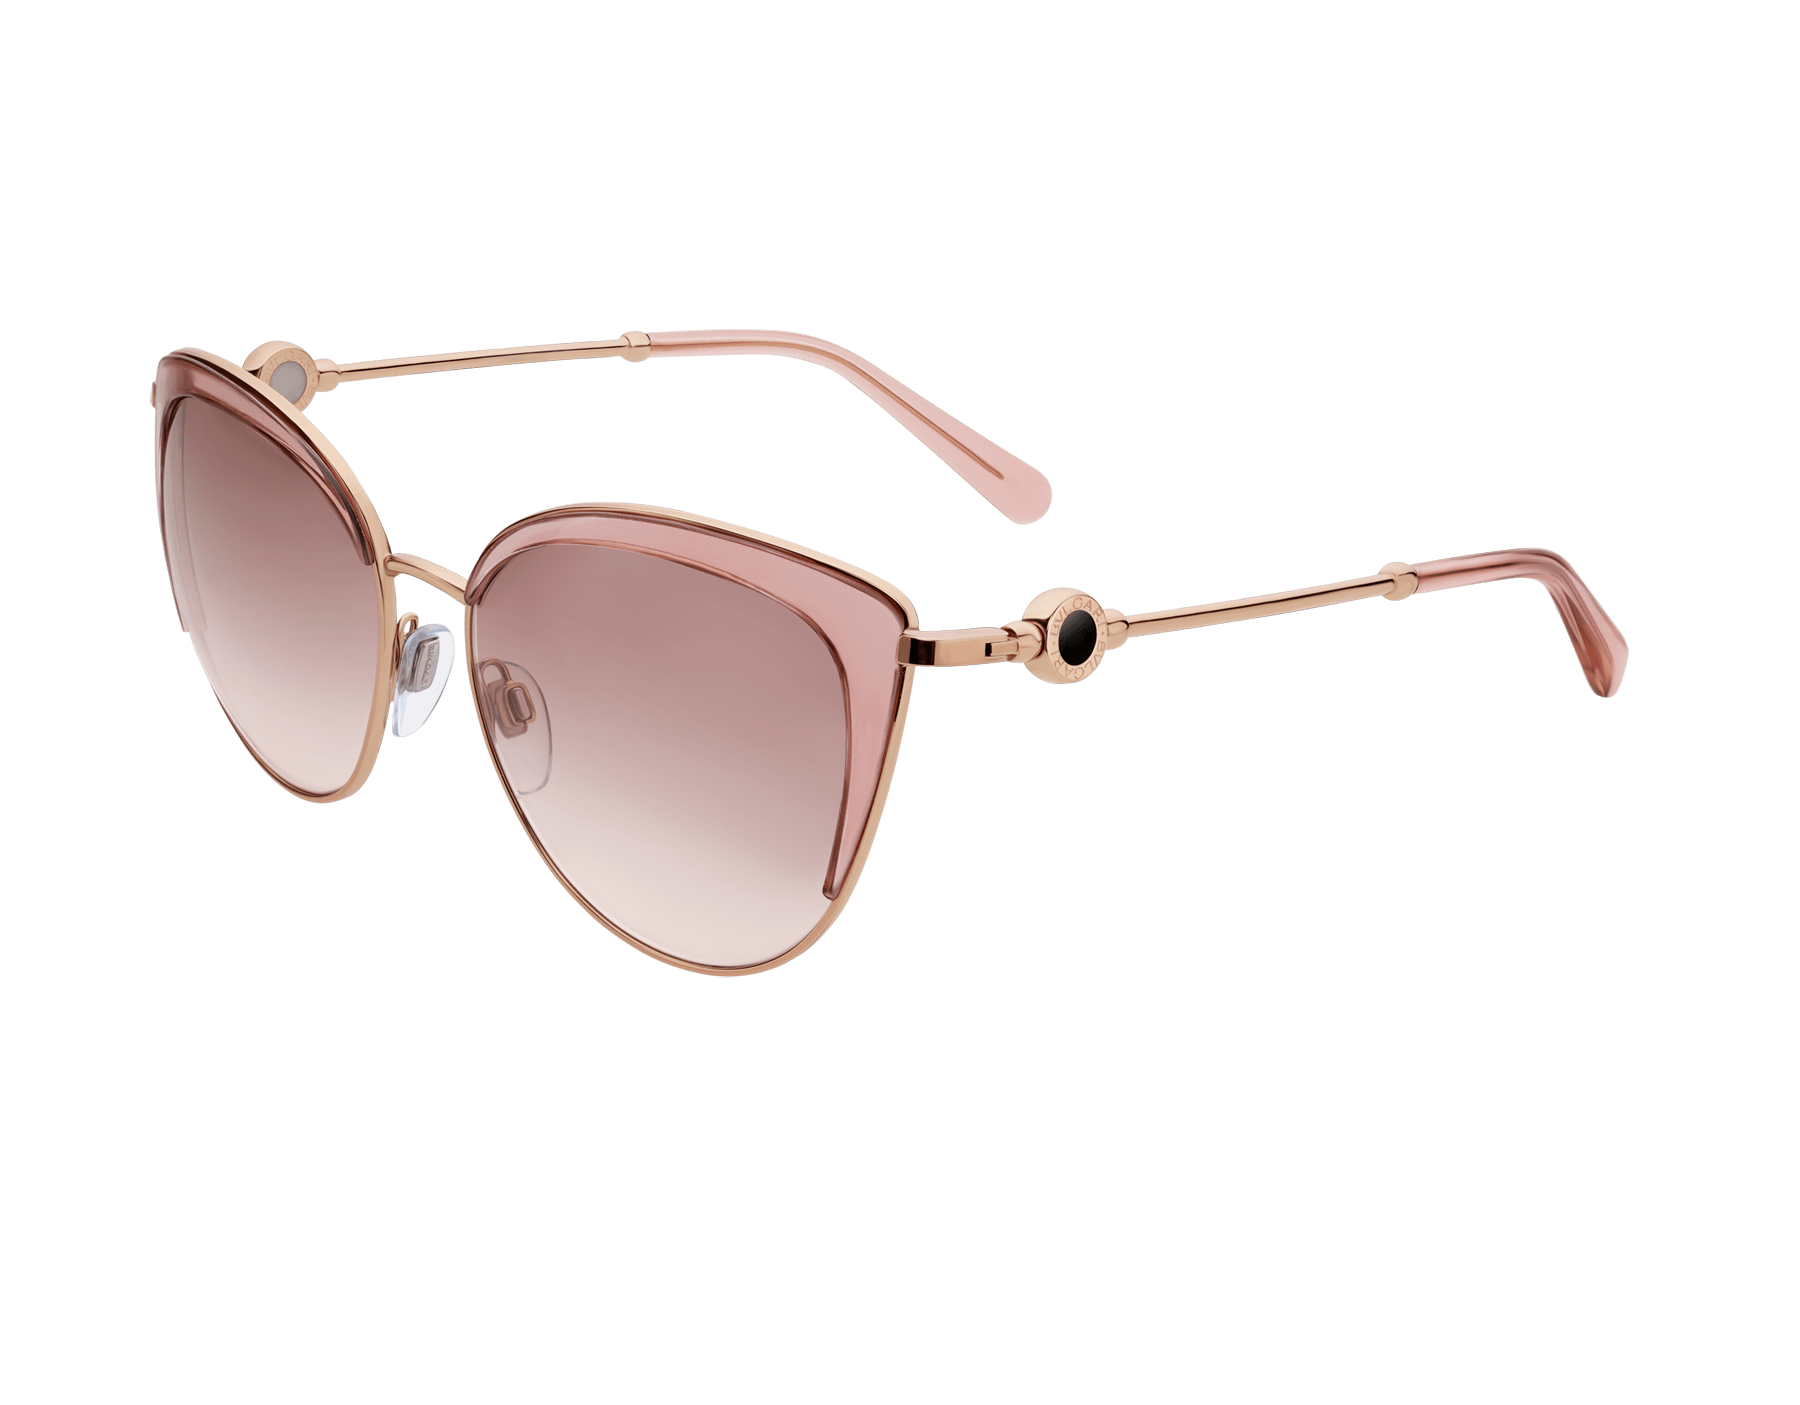 BVLGARI BVLGARI soft cat-eye metal sunglasses featuring a round décor with double logo. 903915 image 1